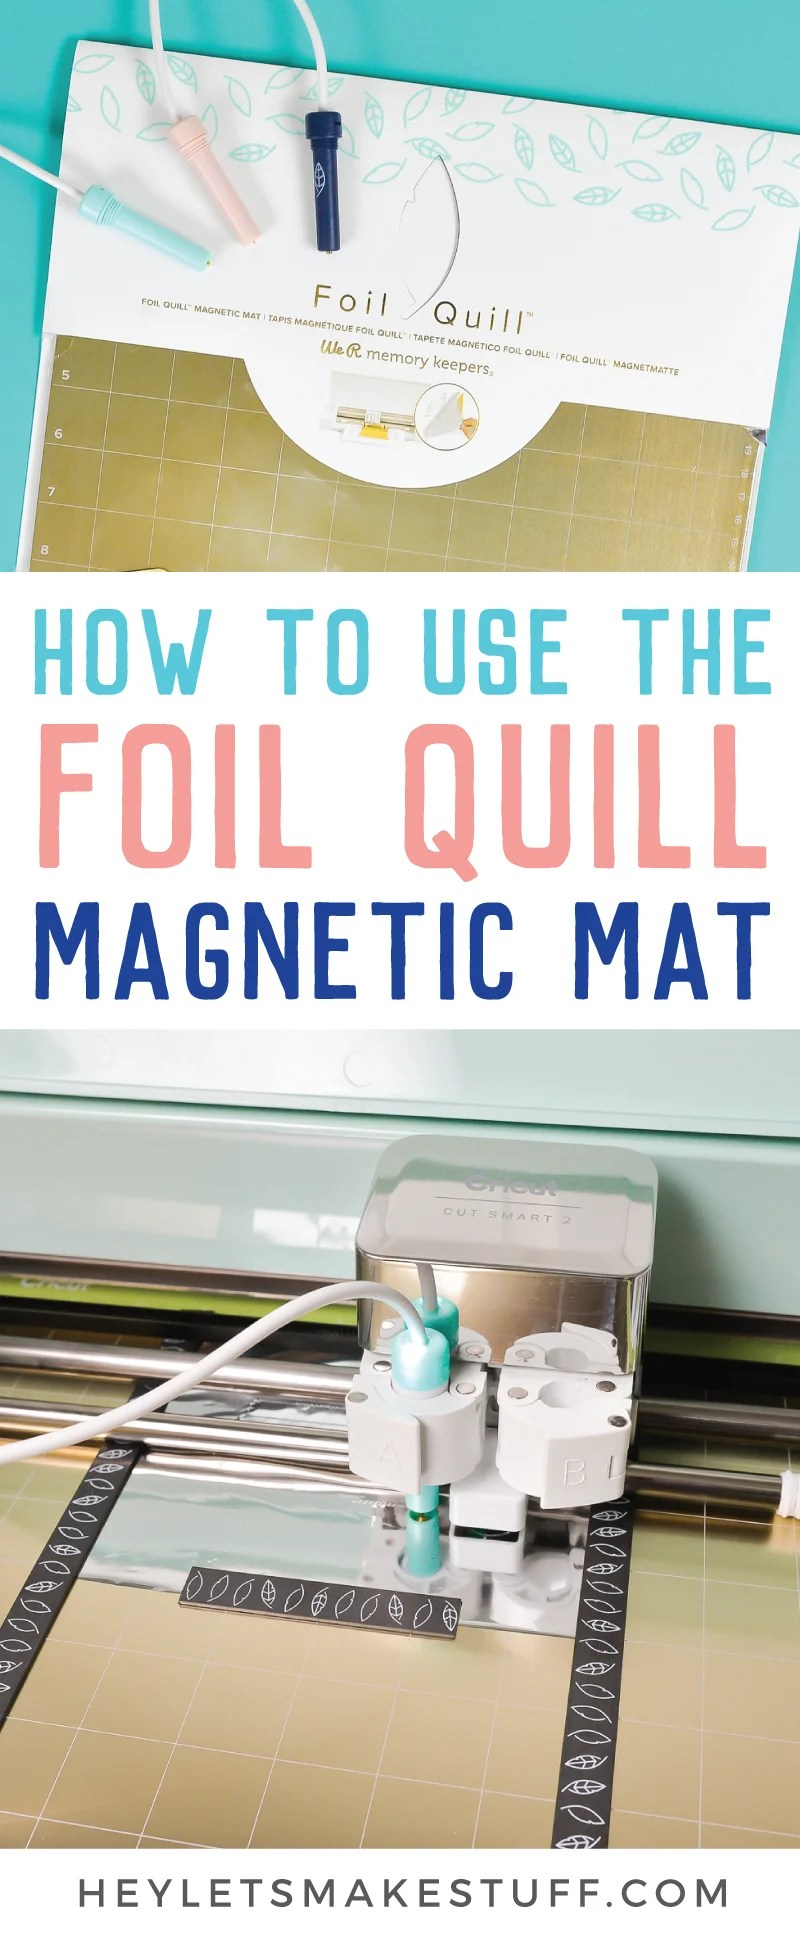 Make your Foil Quill projects quicker and easier with the Foil Quill Magnetic Mat! Instead of messing with tape on your project, use the metal mat and magnet strips to hold your foil to your project. Here's our review and a tutorial for how to use it! via @heyletsmakestuf